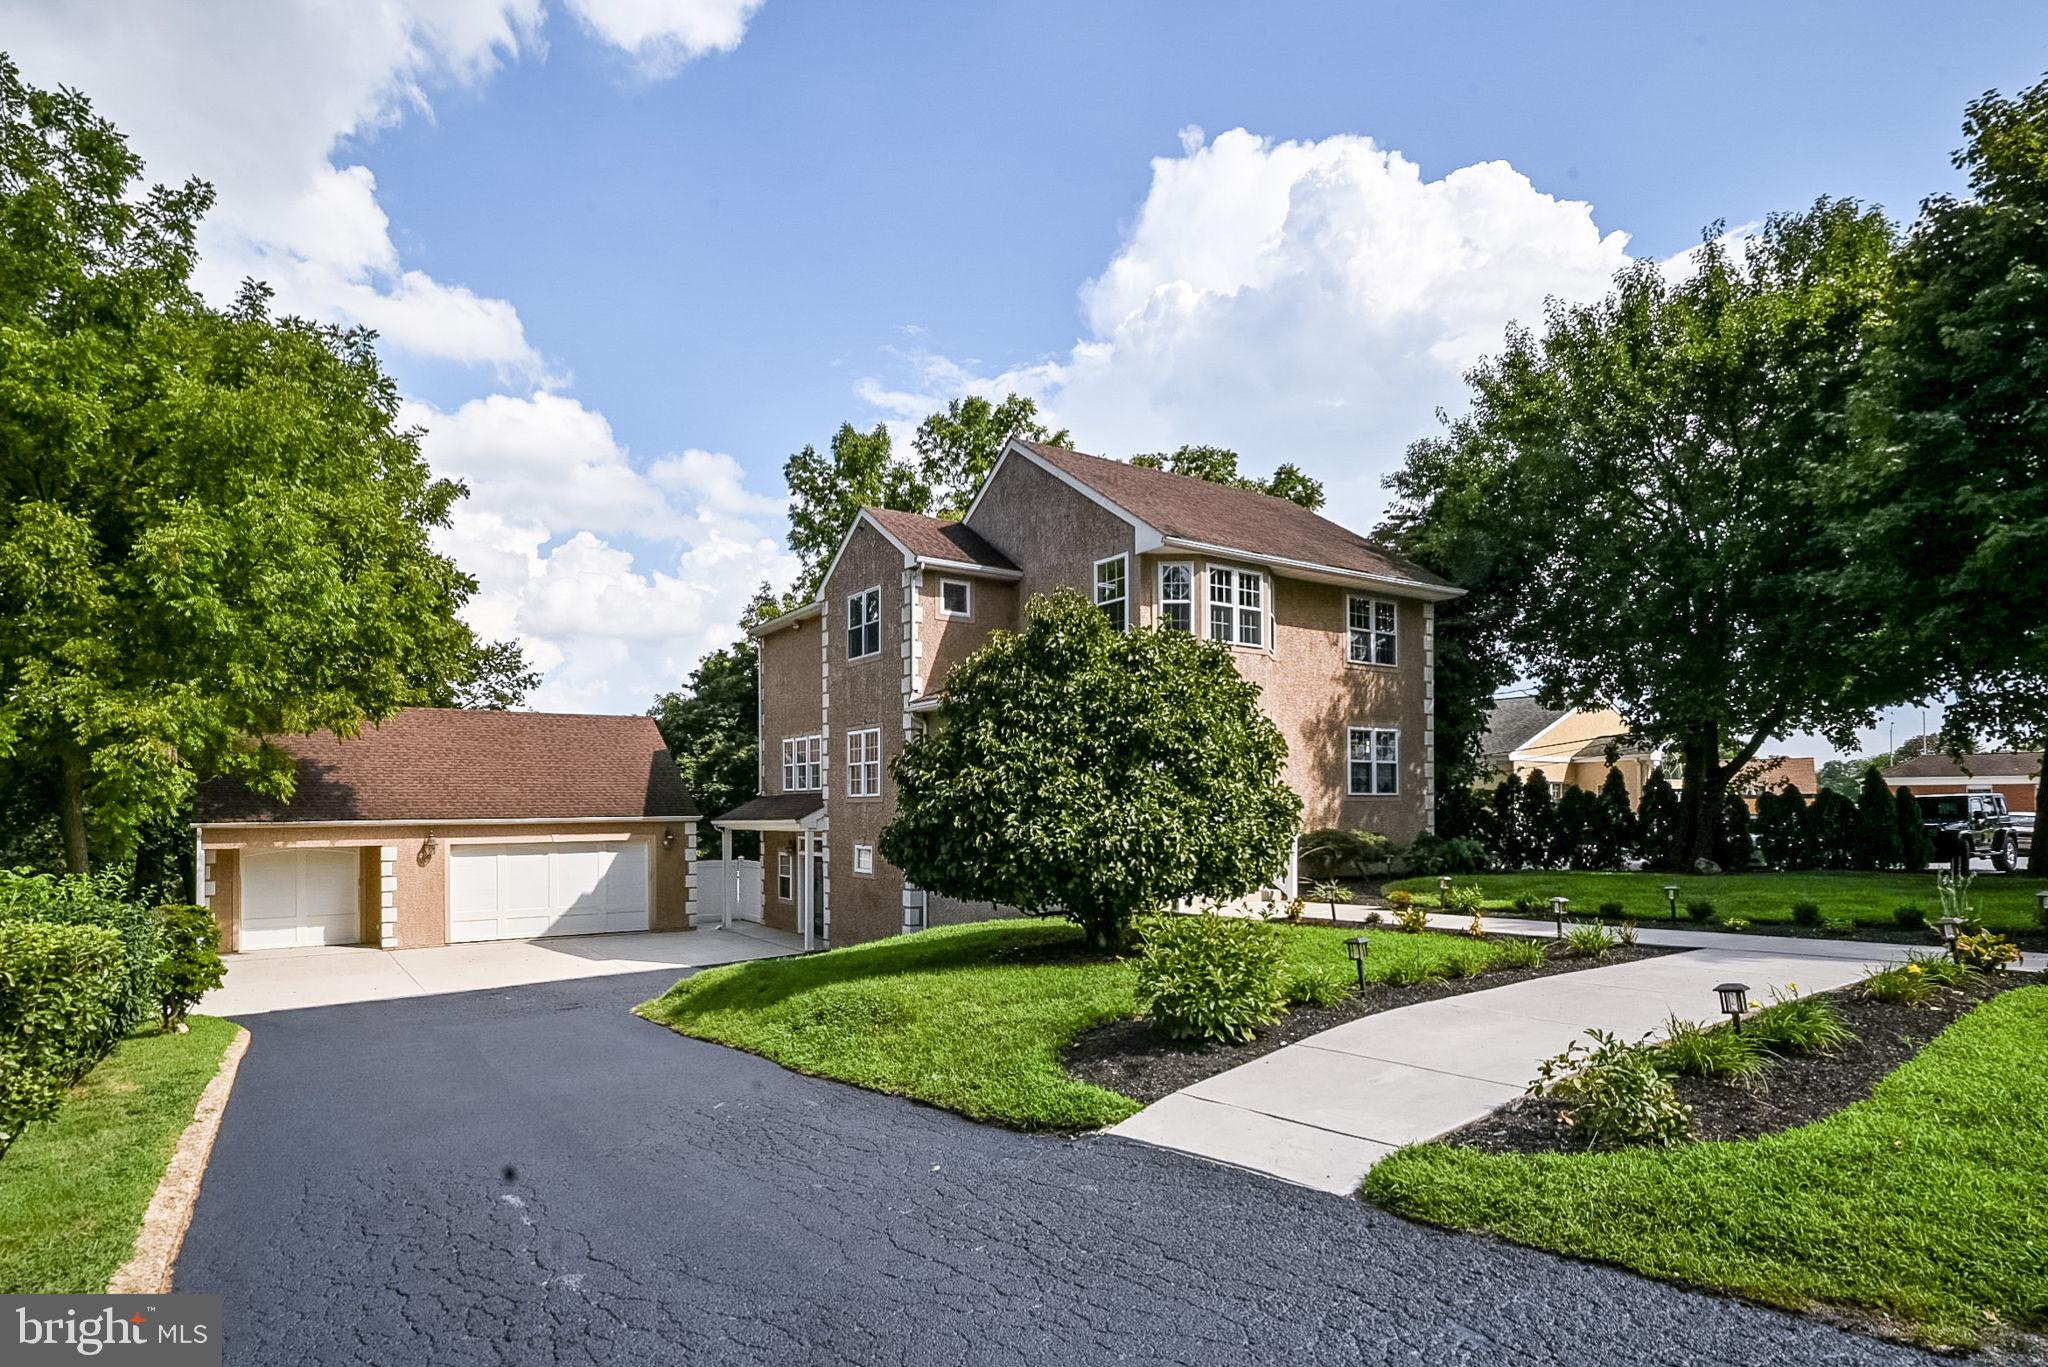 """SHOWINGS START ON SUNDAY 9/5/21.  Come tour this beautiful 3 level home built in 2004. The cathedral ceiling family room with french doors out to an oversized patio and view of Red Clay Creek will blow you away. The master bedroom also features high ceilings and french doors out to a large balcony, also looking over the creek. His & Her closets, an electric fireplace, and large bathroom complete the master suite. The shower is oversized with tile surround and seating inside, the Jacuzzi tub has extra jets, stall toilet provides privacy and the dual vanities make it easy for his and her. Two other bedrooms, a common bathroom and upstairs laundry are also on the upper level. The main level has an open floor plan with another bedroom (or office) and full bathroom. The kitchen is complete with granite counters, tile floors, tile backsplash, stainless appliances, 42"""" cabinets, double oven, double sink and island with built-in range. The house also features recessed lighting and wainscoting and chair rail moulding. Utilities have been updated with Dual zoned high-efficiency electric heaters with gas back-up, Tankless water heater, Radon mitigation system, and an in-house Dehumidifier system. The front is freshly landscaped, has updated walkways and parking for 9 cars in the detached 3-car garage. Easy access to Kirkwood Hwy. Schedule your tour today!"""